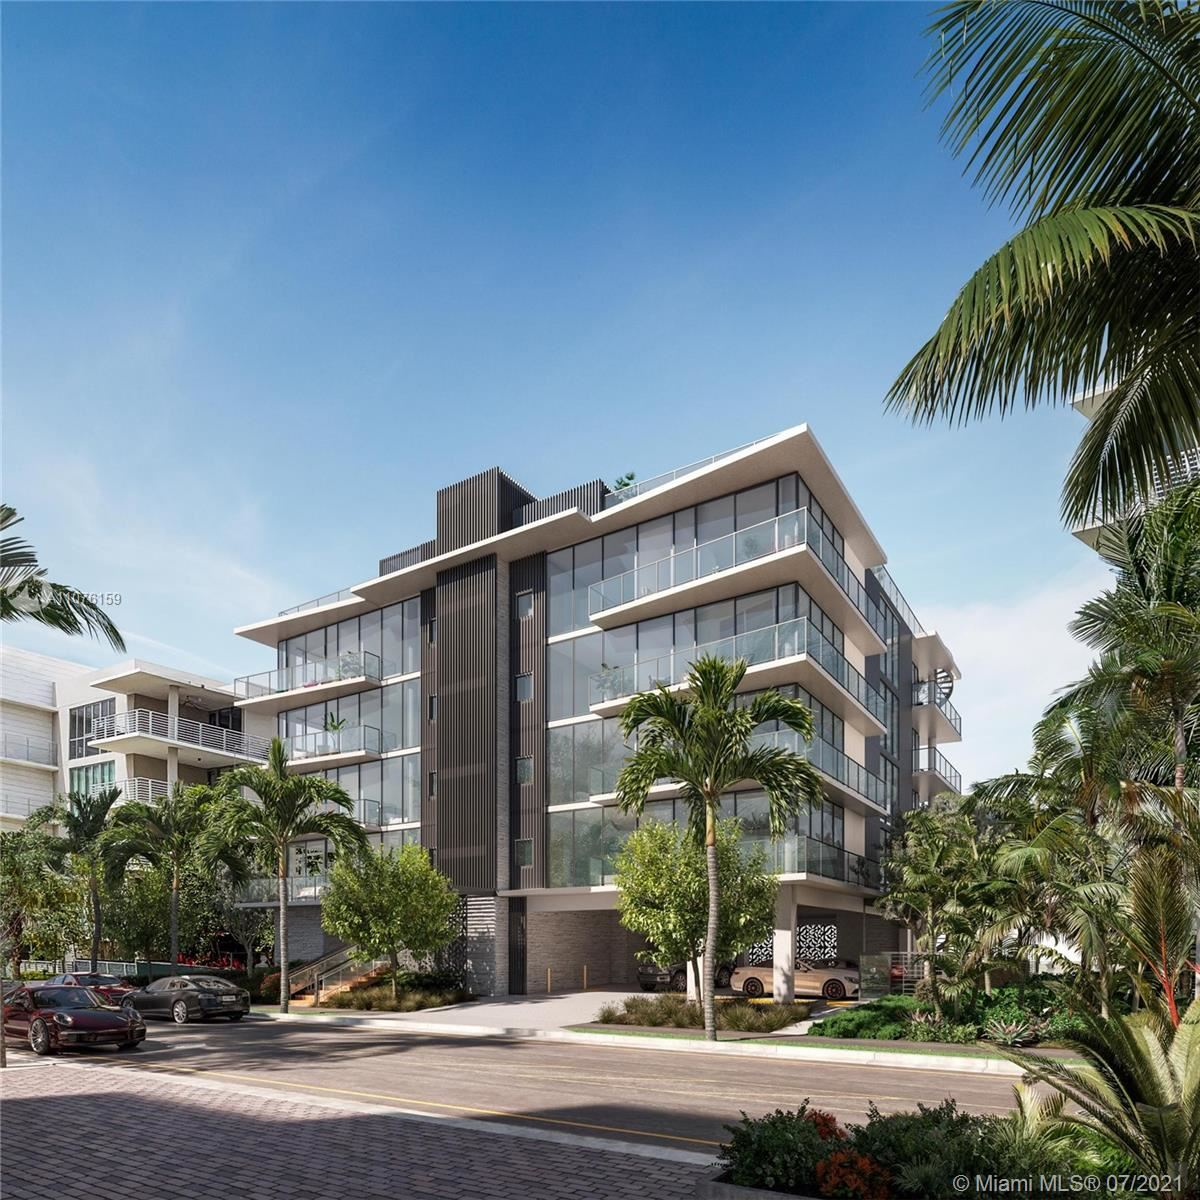 141 Isle Of Venice Dr #2 South, Fort Lauderdale, FL 33301 - #: A11076159